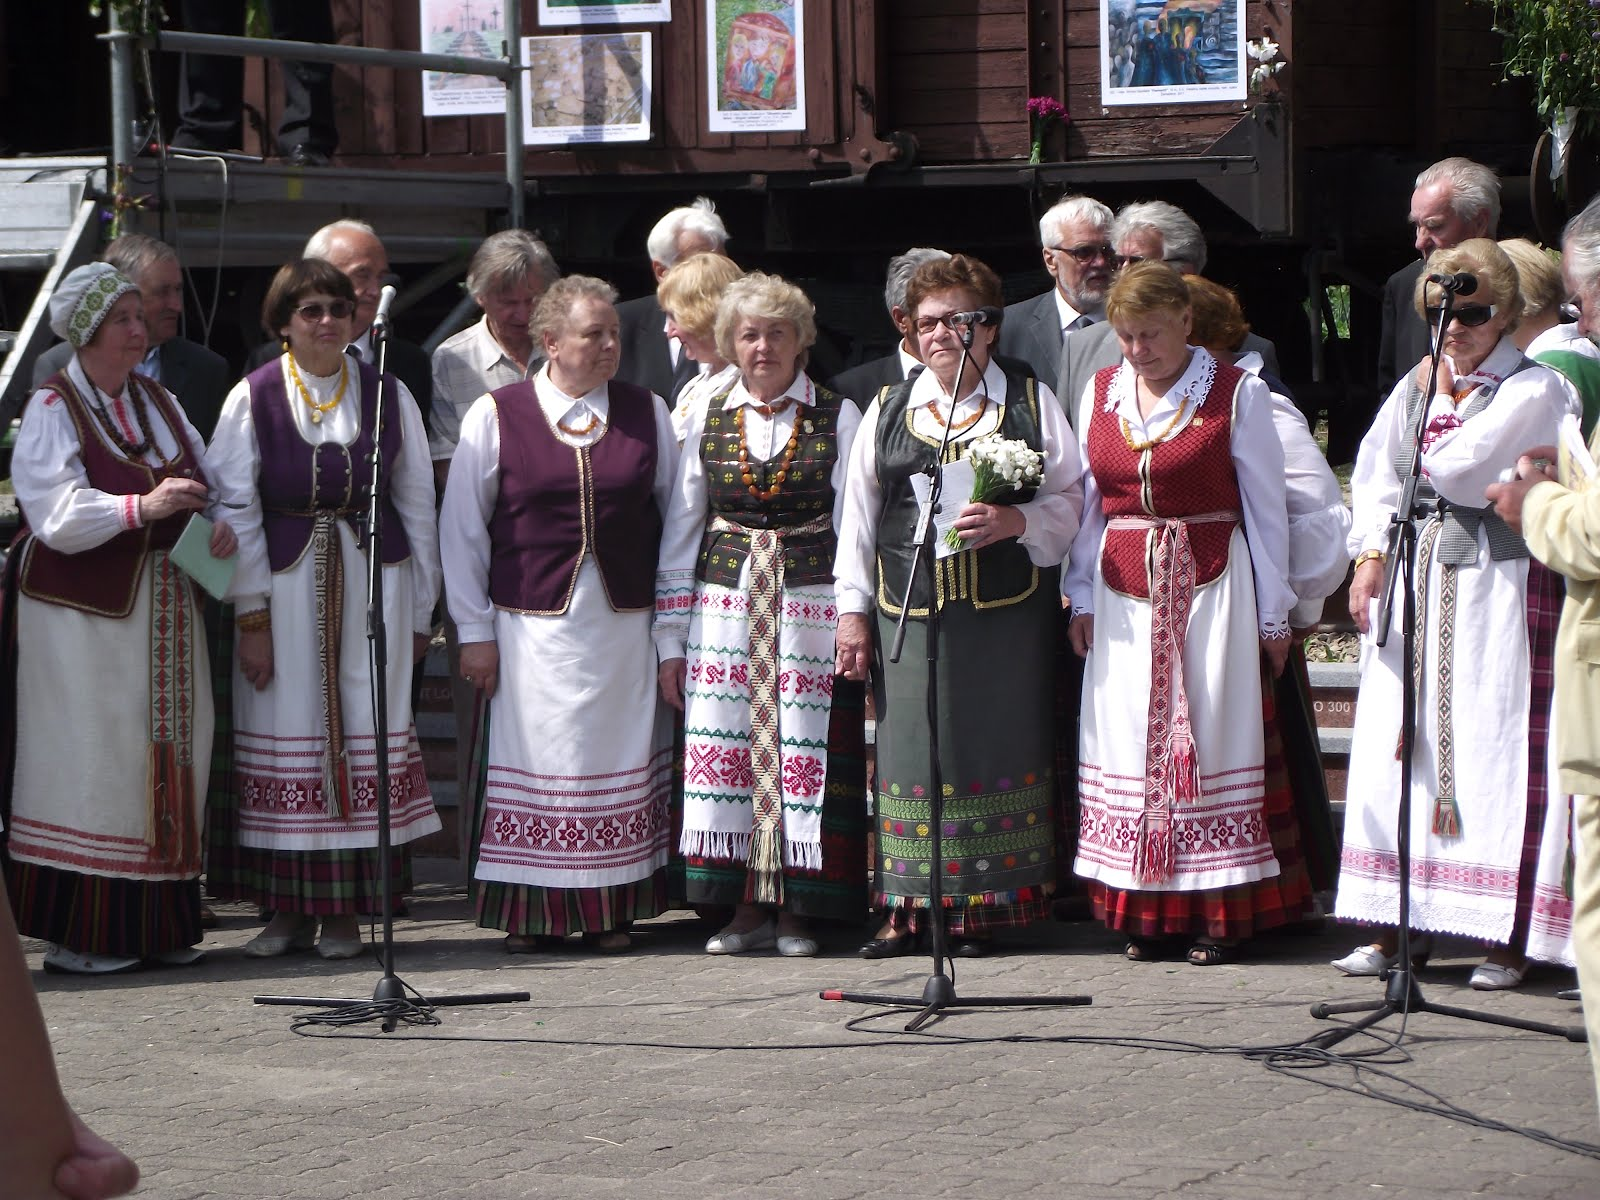 Special days to enjoy together: Memorable days in Lithuanian history: THE DAY OF MOURNING AND HOPE